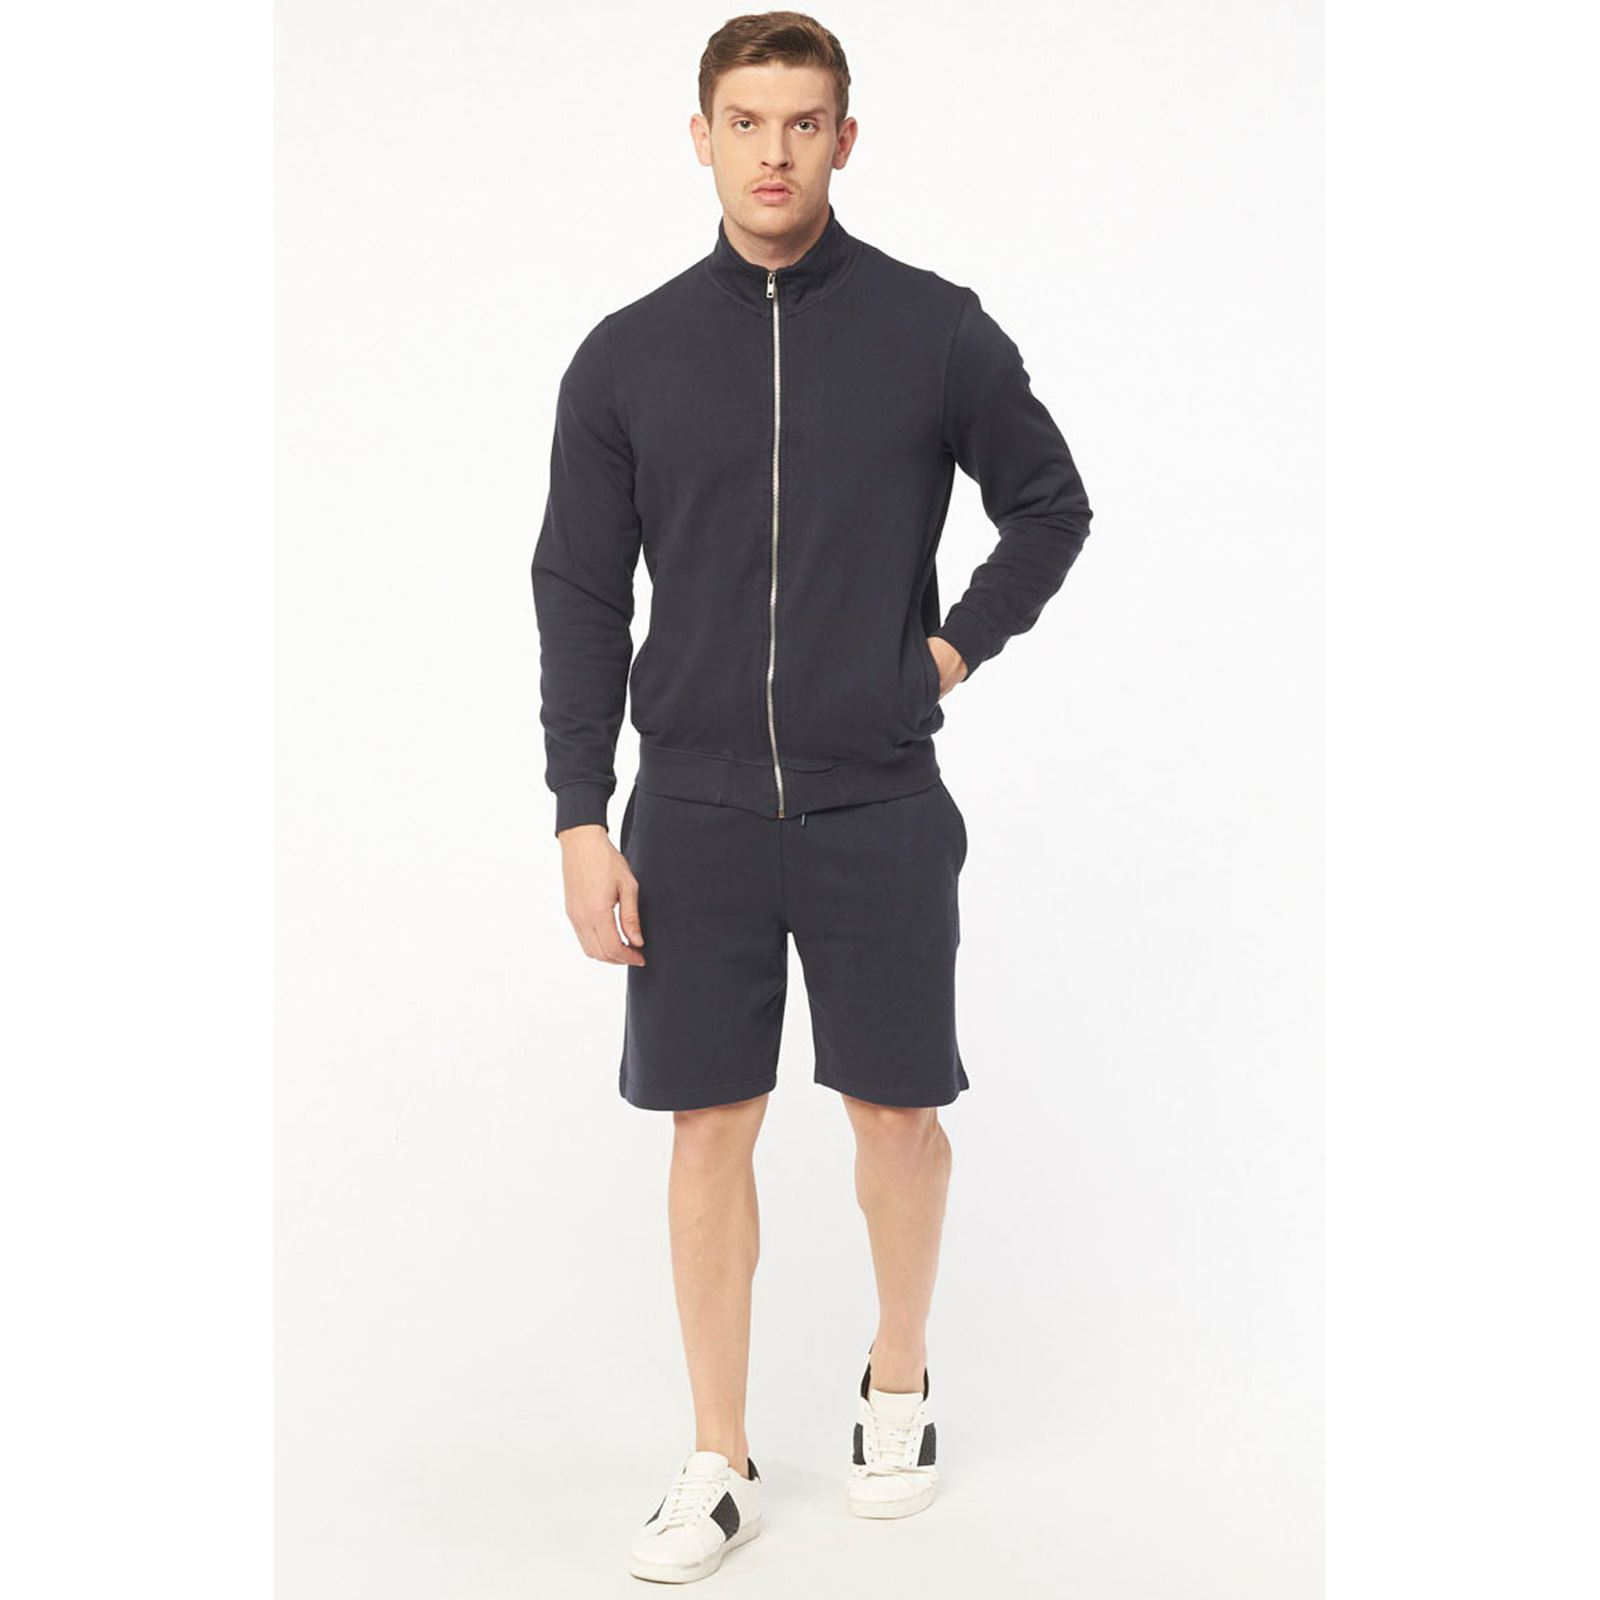 shirtBleu Marine V Best Mountain Sweat Homme rCxQdBotsh